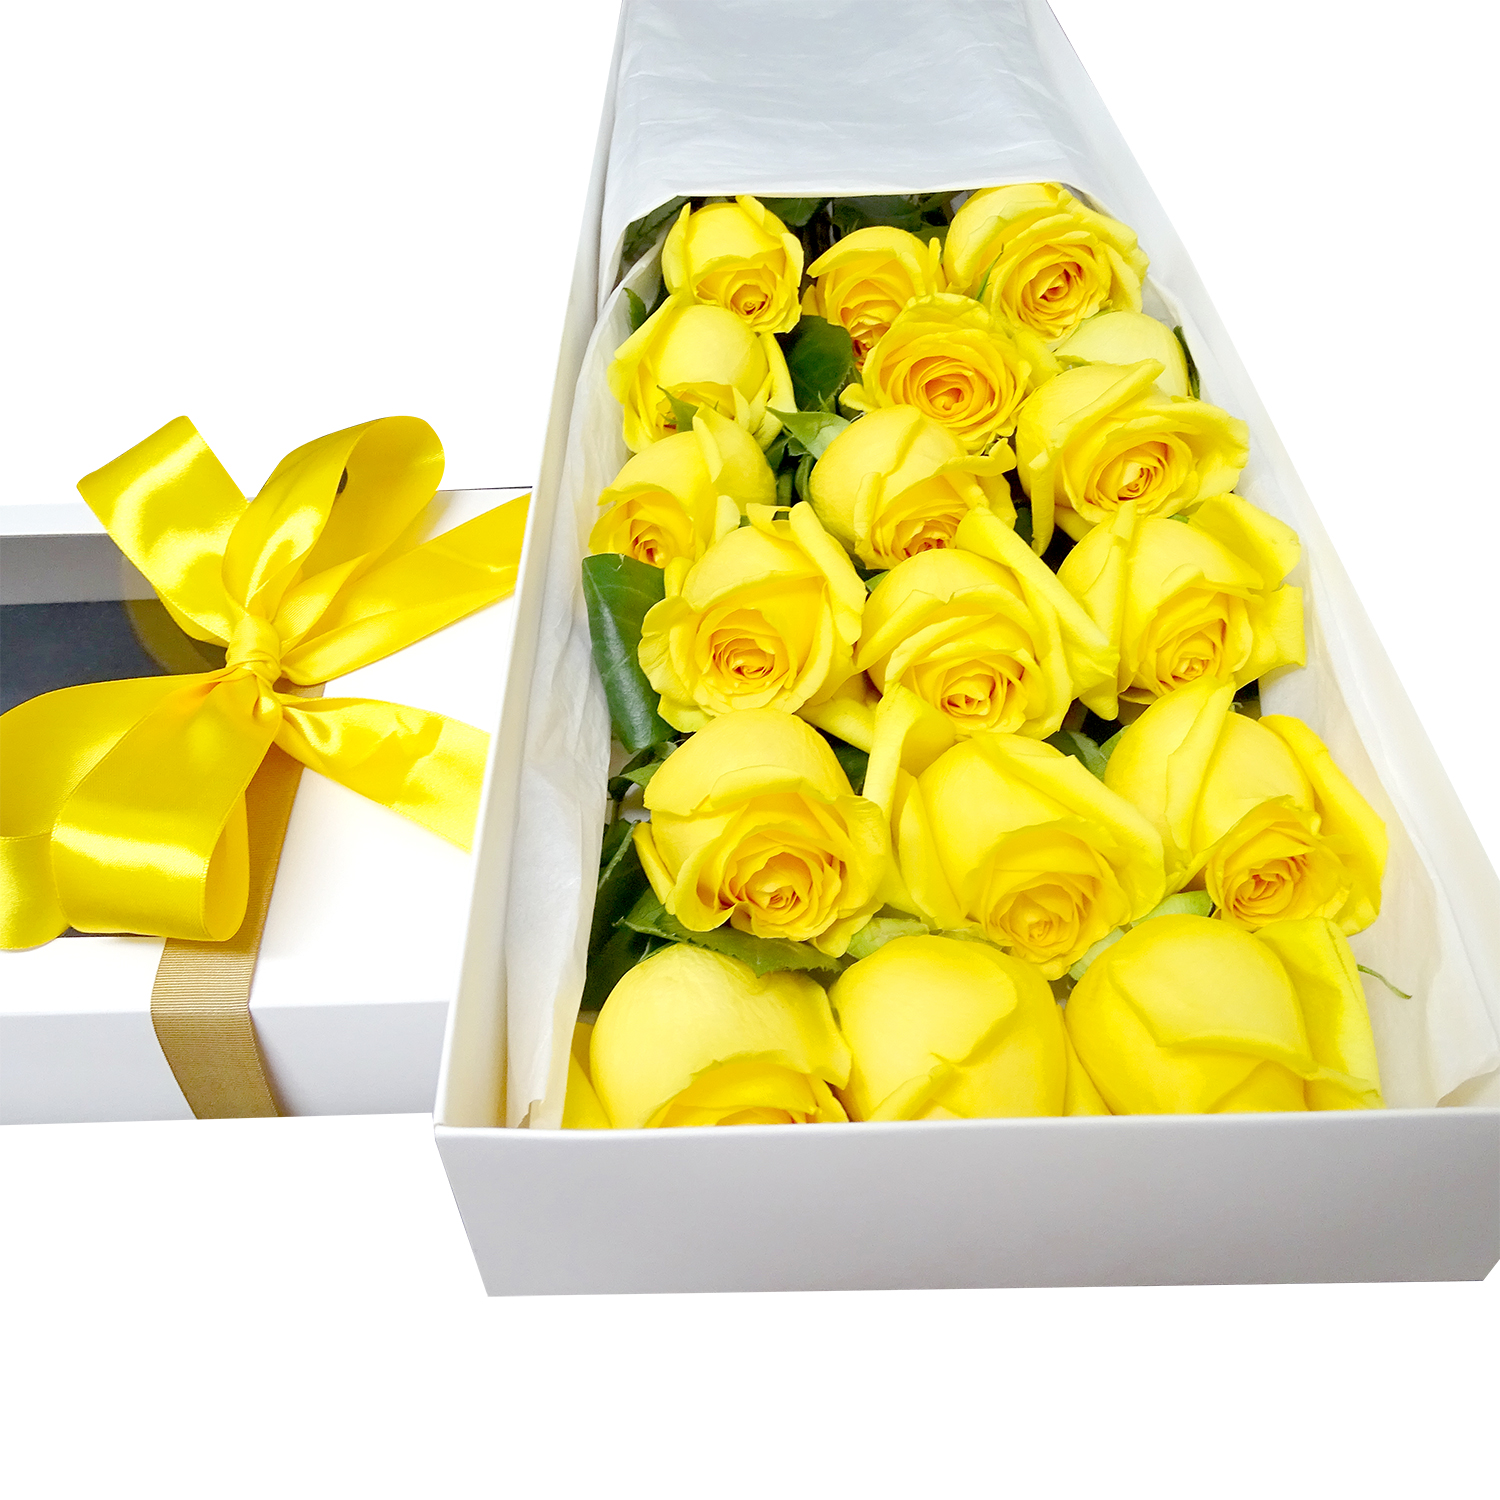 Caja de 18 bellas Rosas de color Amarillo